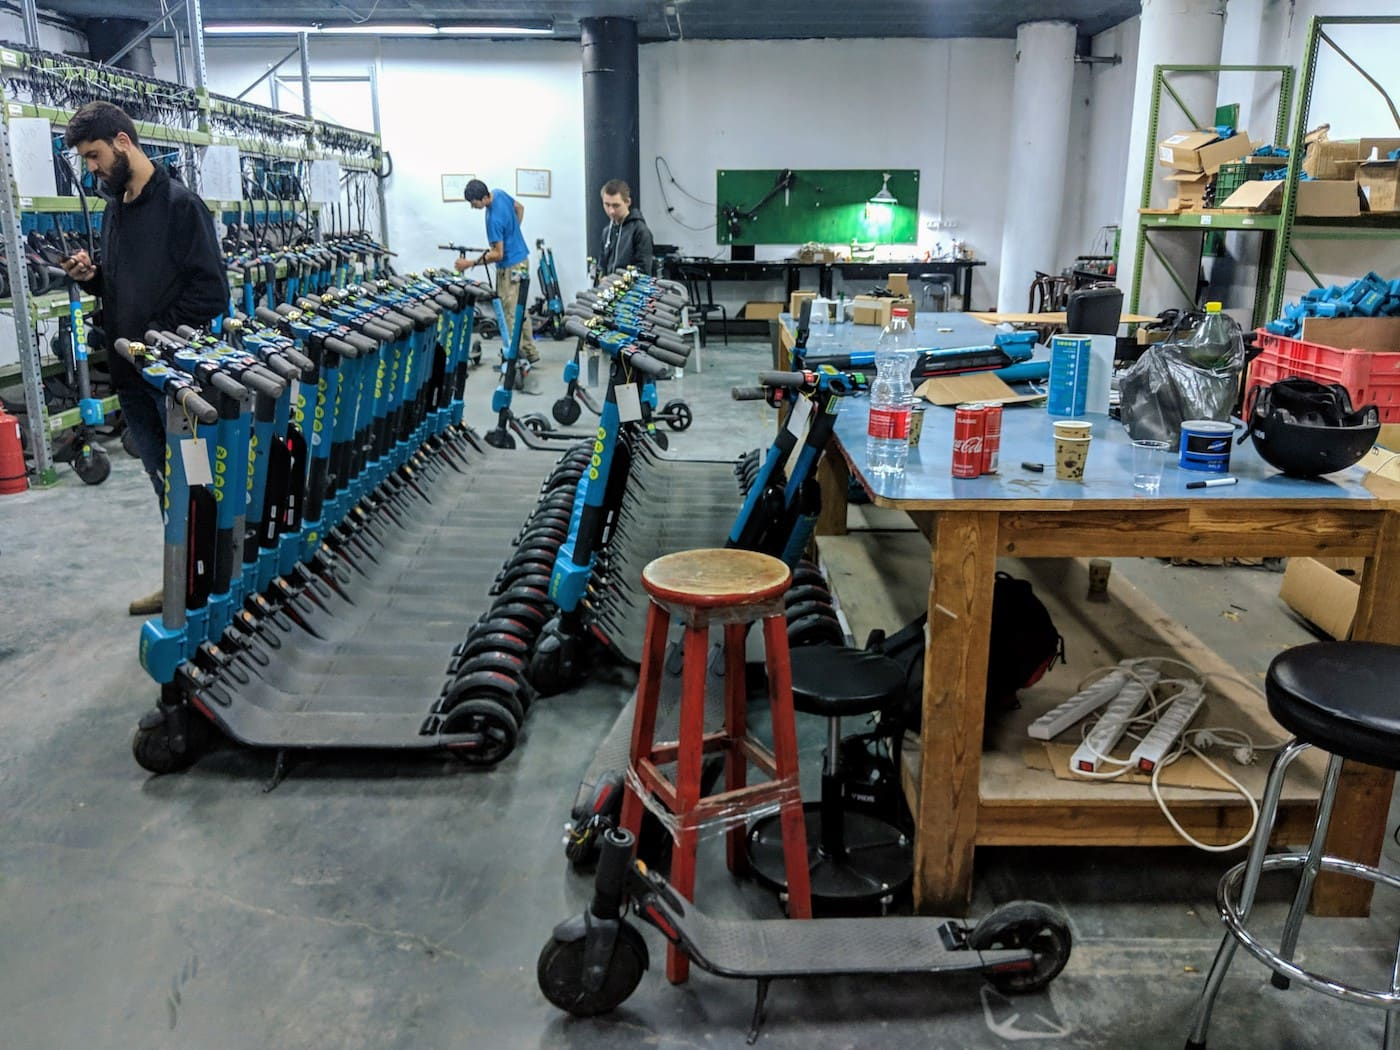 Factories and Warehouses for Startups - Wind, 2018, Tel Aviv